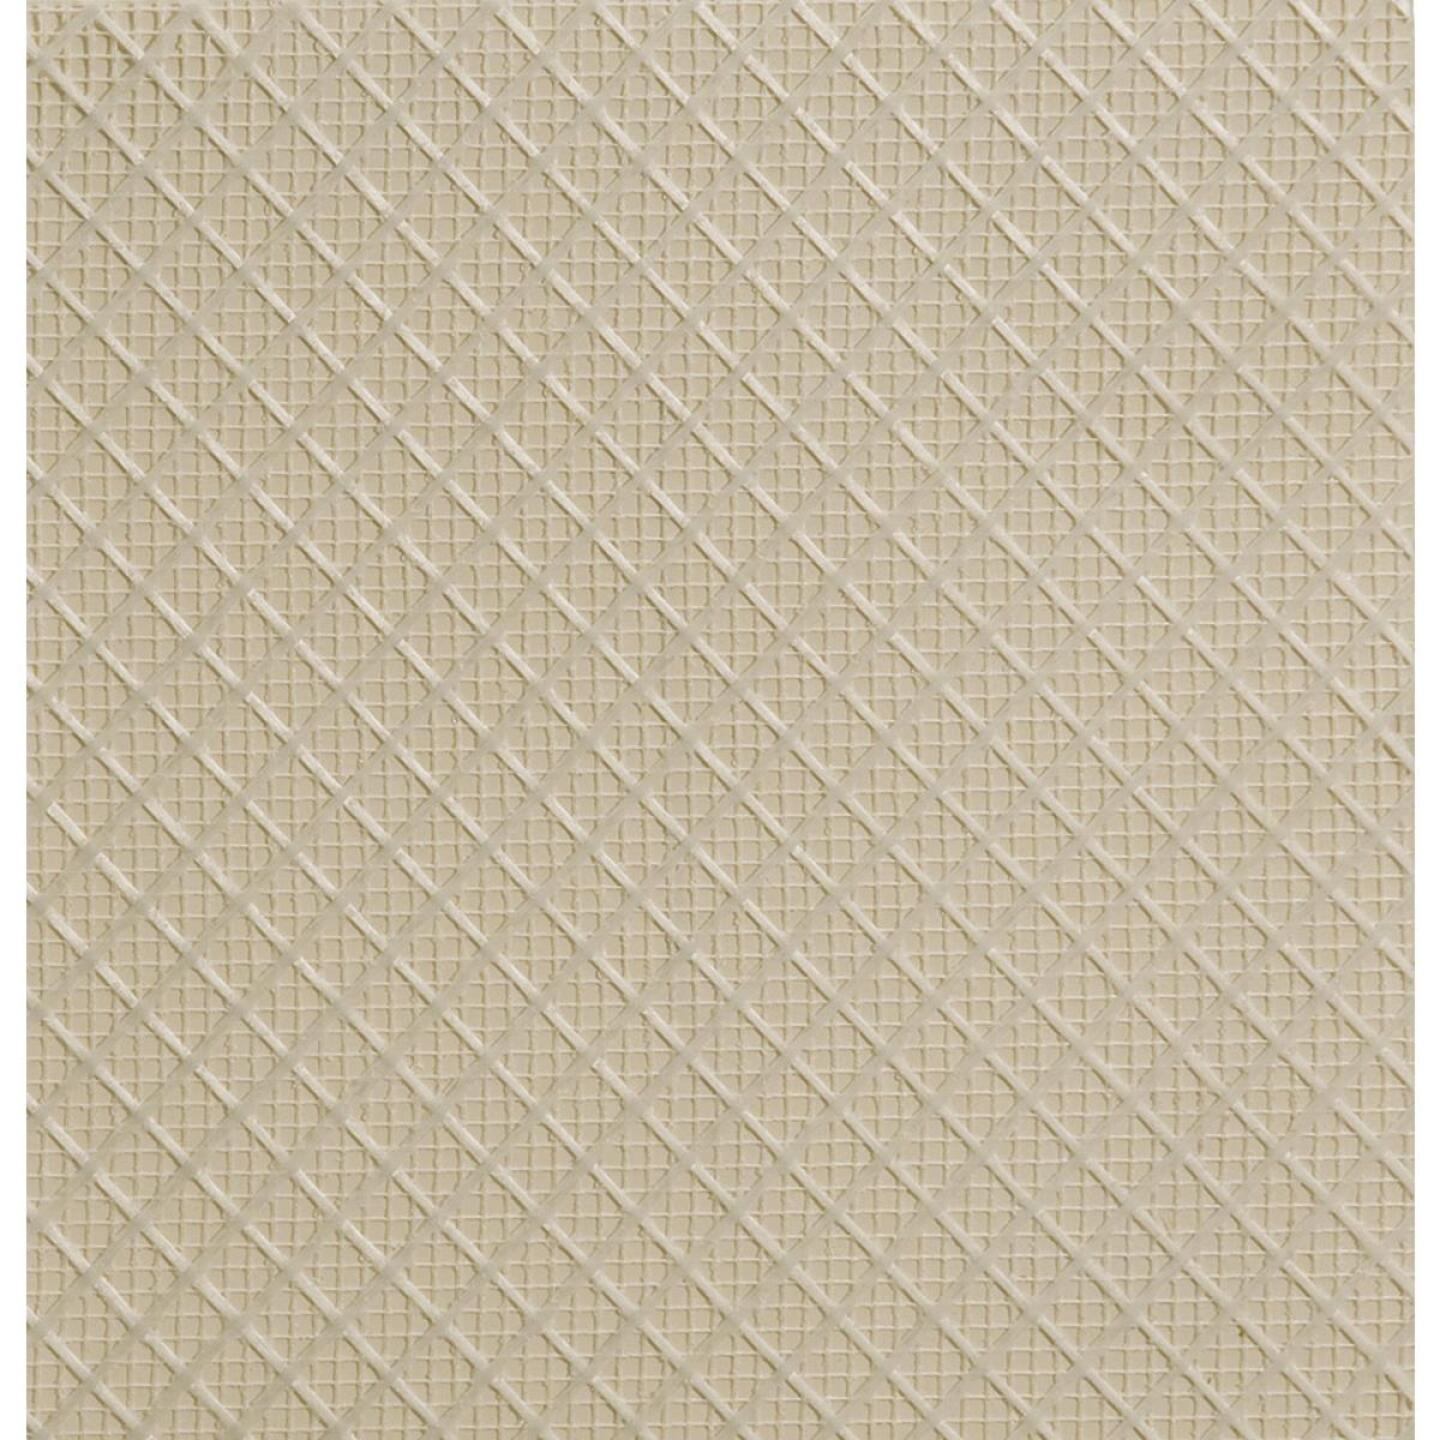 FibaTape 7 In. x 7 In. Electrical Outlet Self-Adhesive Drywall Patch Image 2